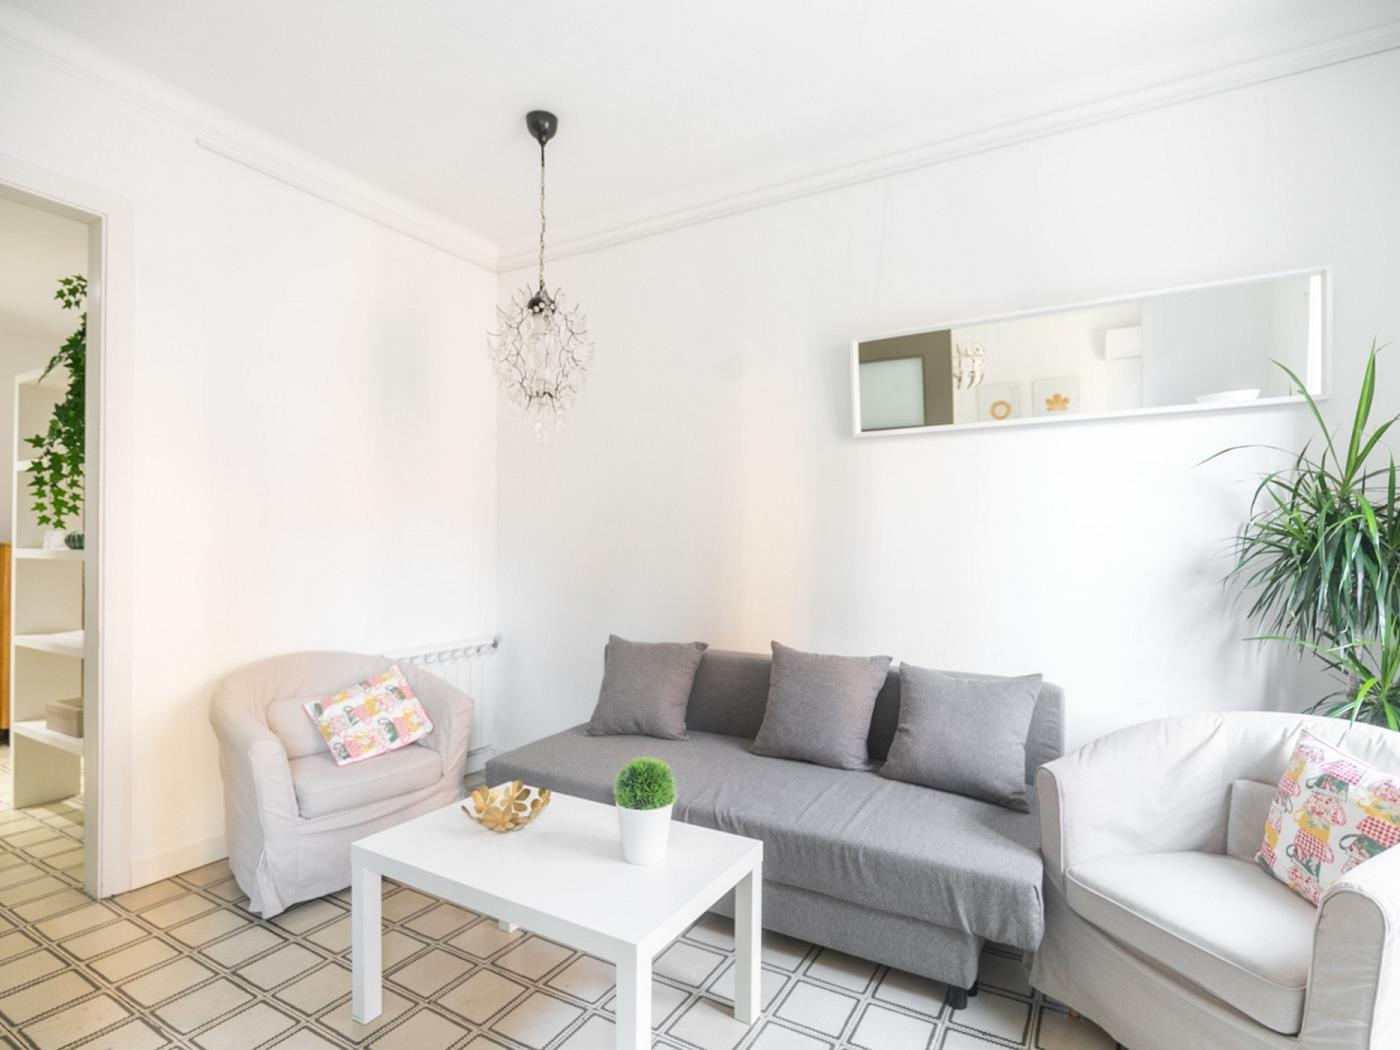 Lovely apartment in the heart of the Eixample with a balcony for 4 - My Space Barcelona Apartments